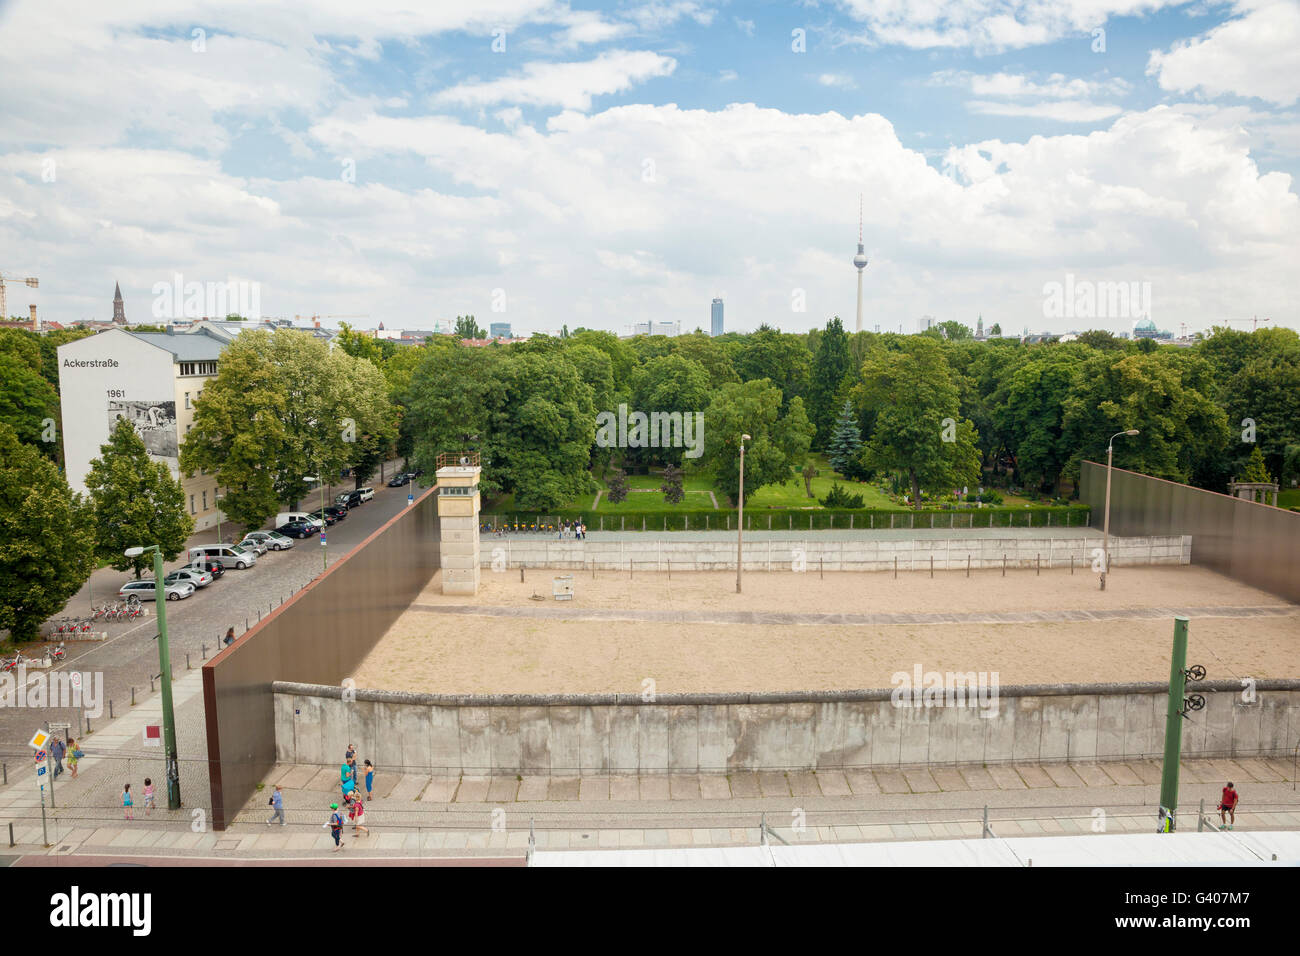 A Berlin wall memorial - Stock Image